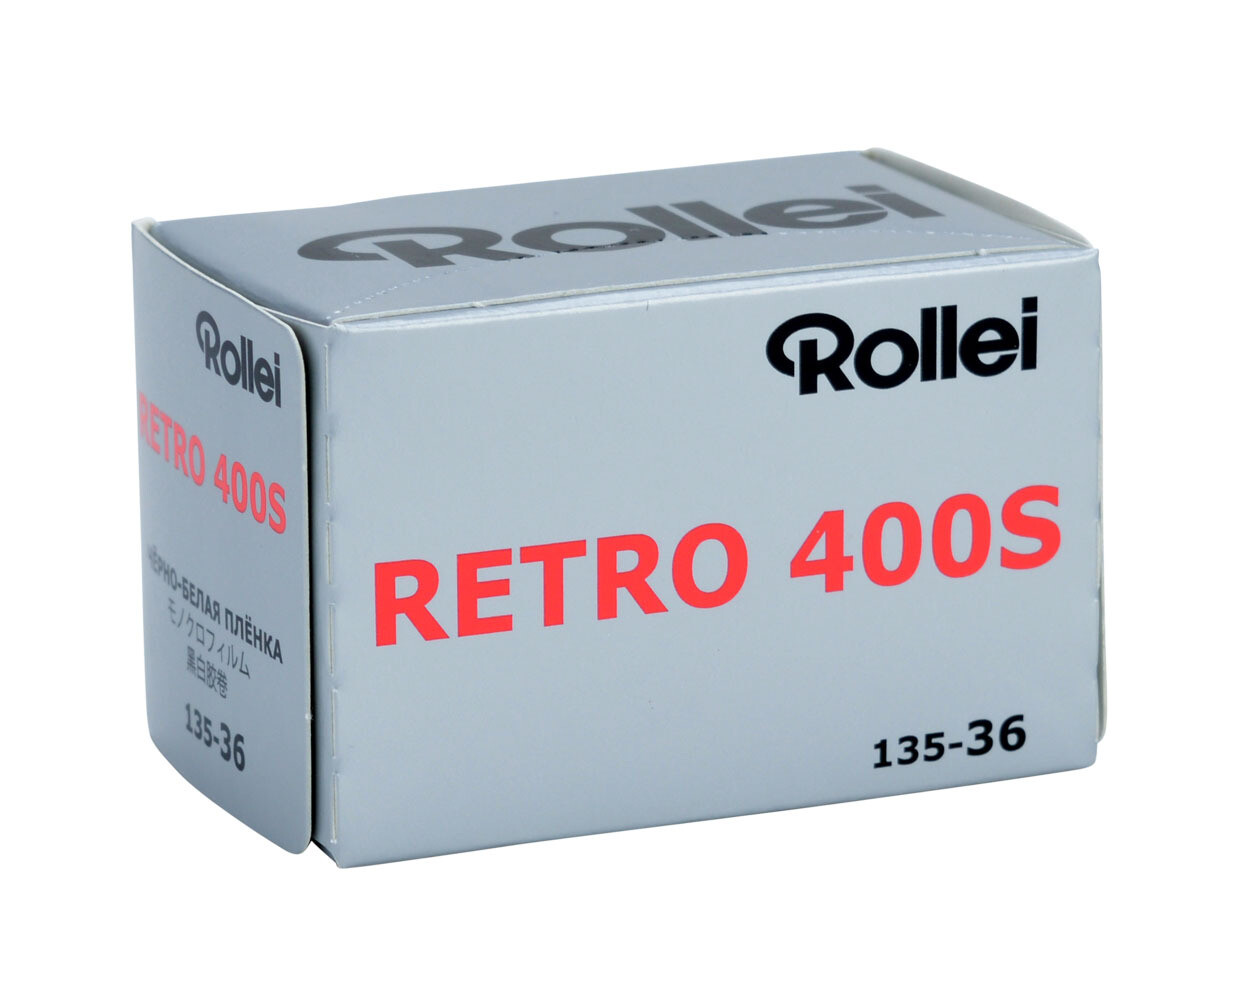 Rollei Retro 400S Back and White  Negative film format 135-36 expired 09/2023